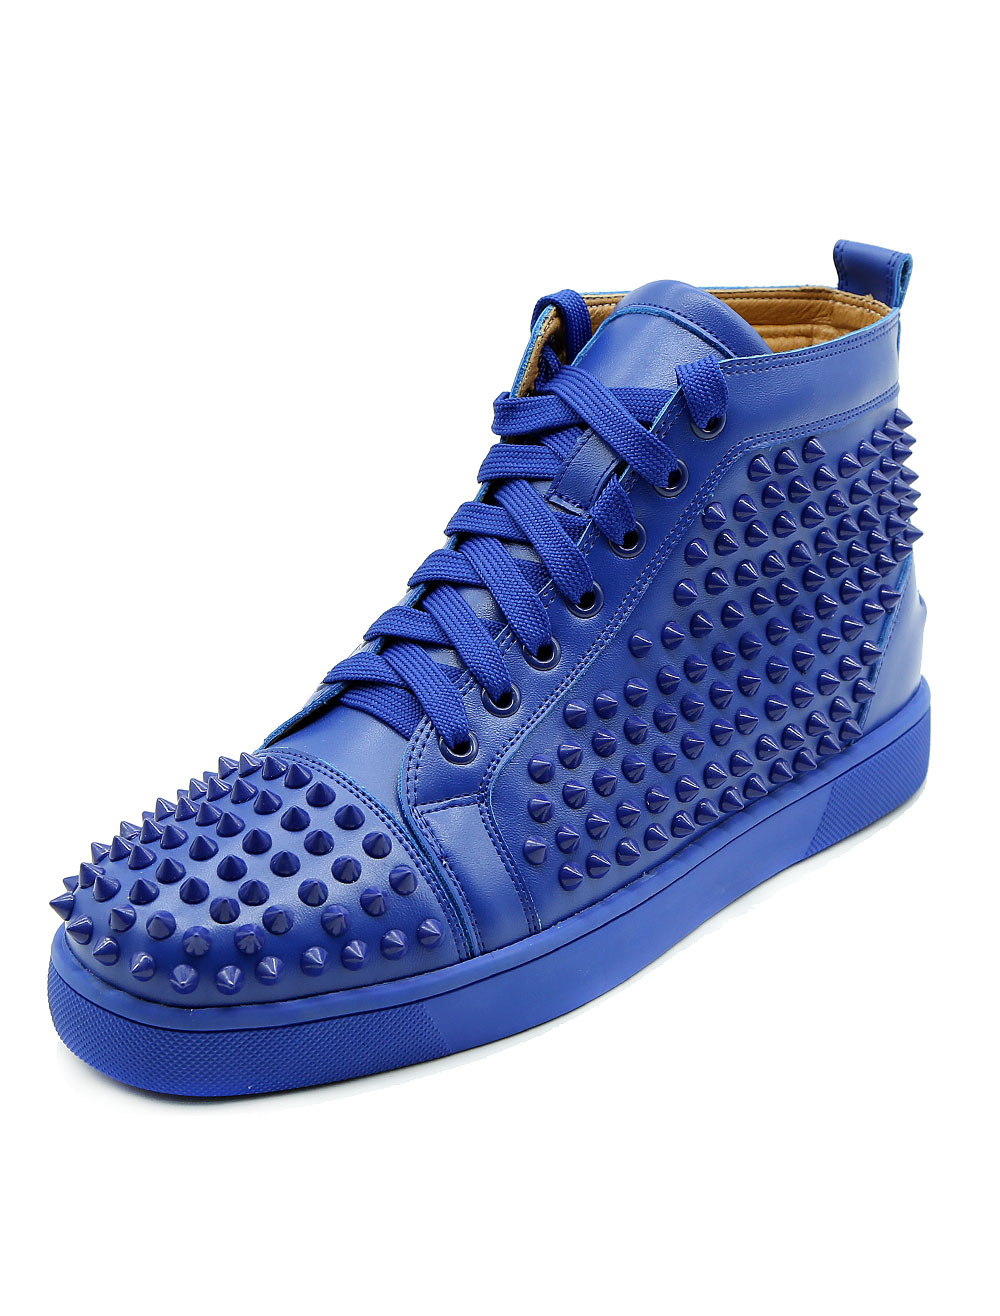 Buy Blue Skate Shoes Leather Men's Round Toe Lace Up Rivets High Top Sneakers for $79.99 in Milanoo store